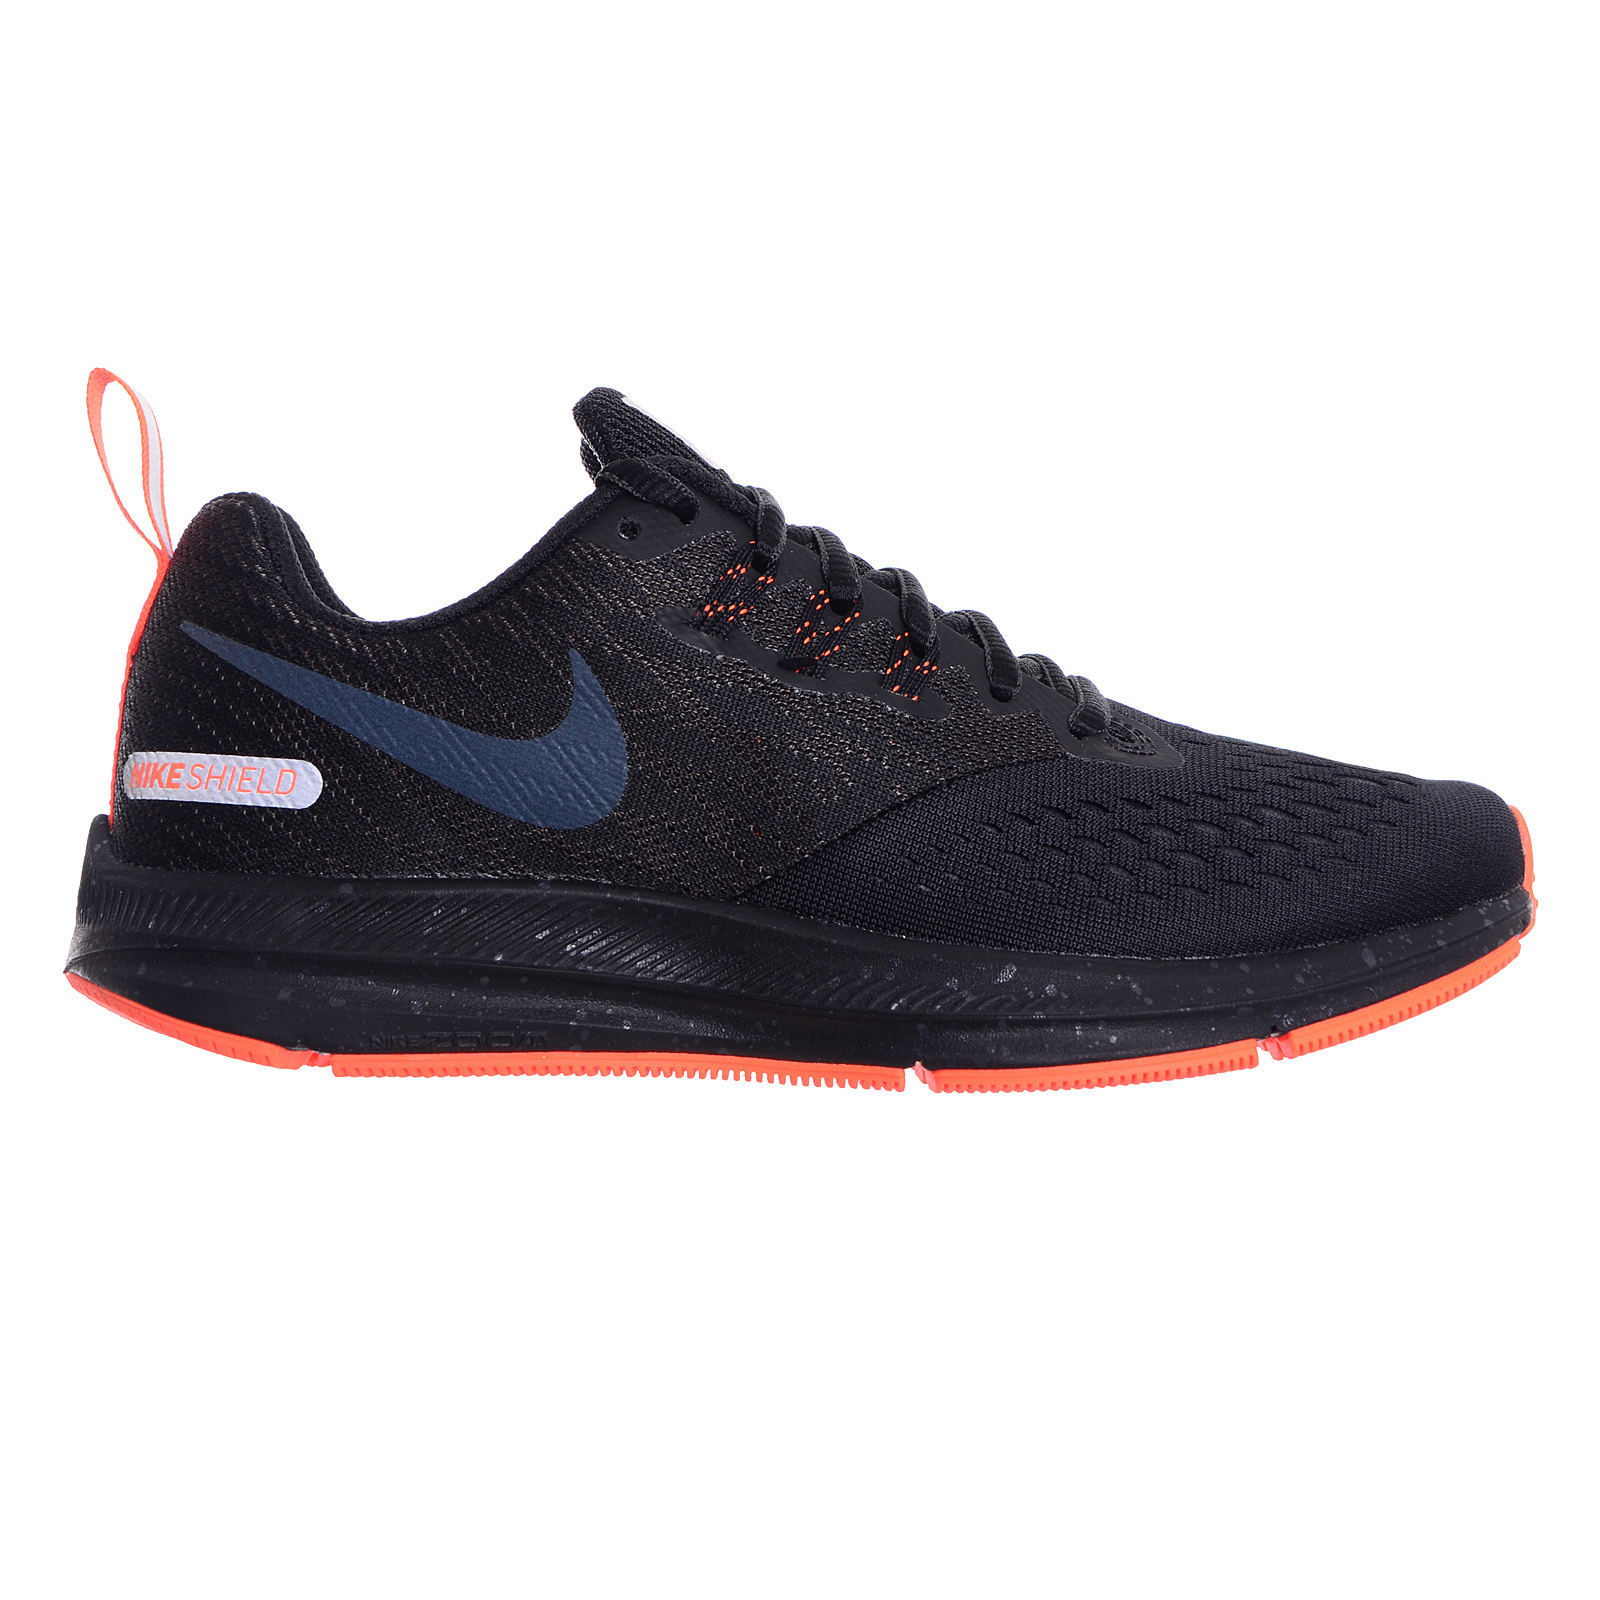 NIKE Patike WMNS NIKE ZOOM WINFLO 4 SHIELD